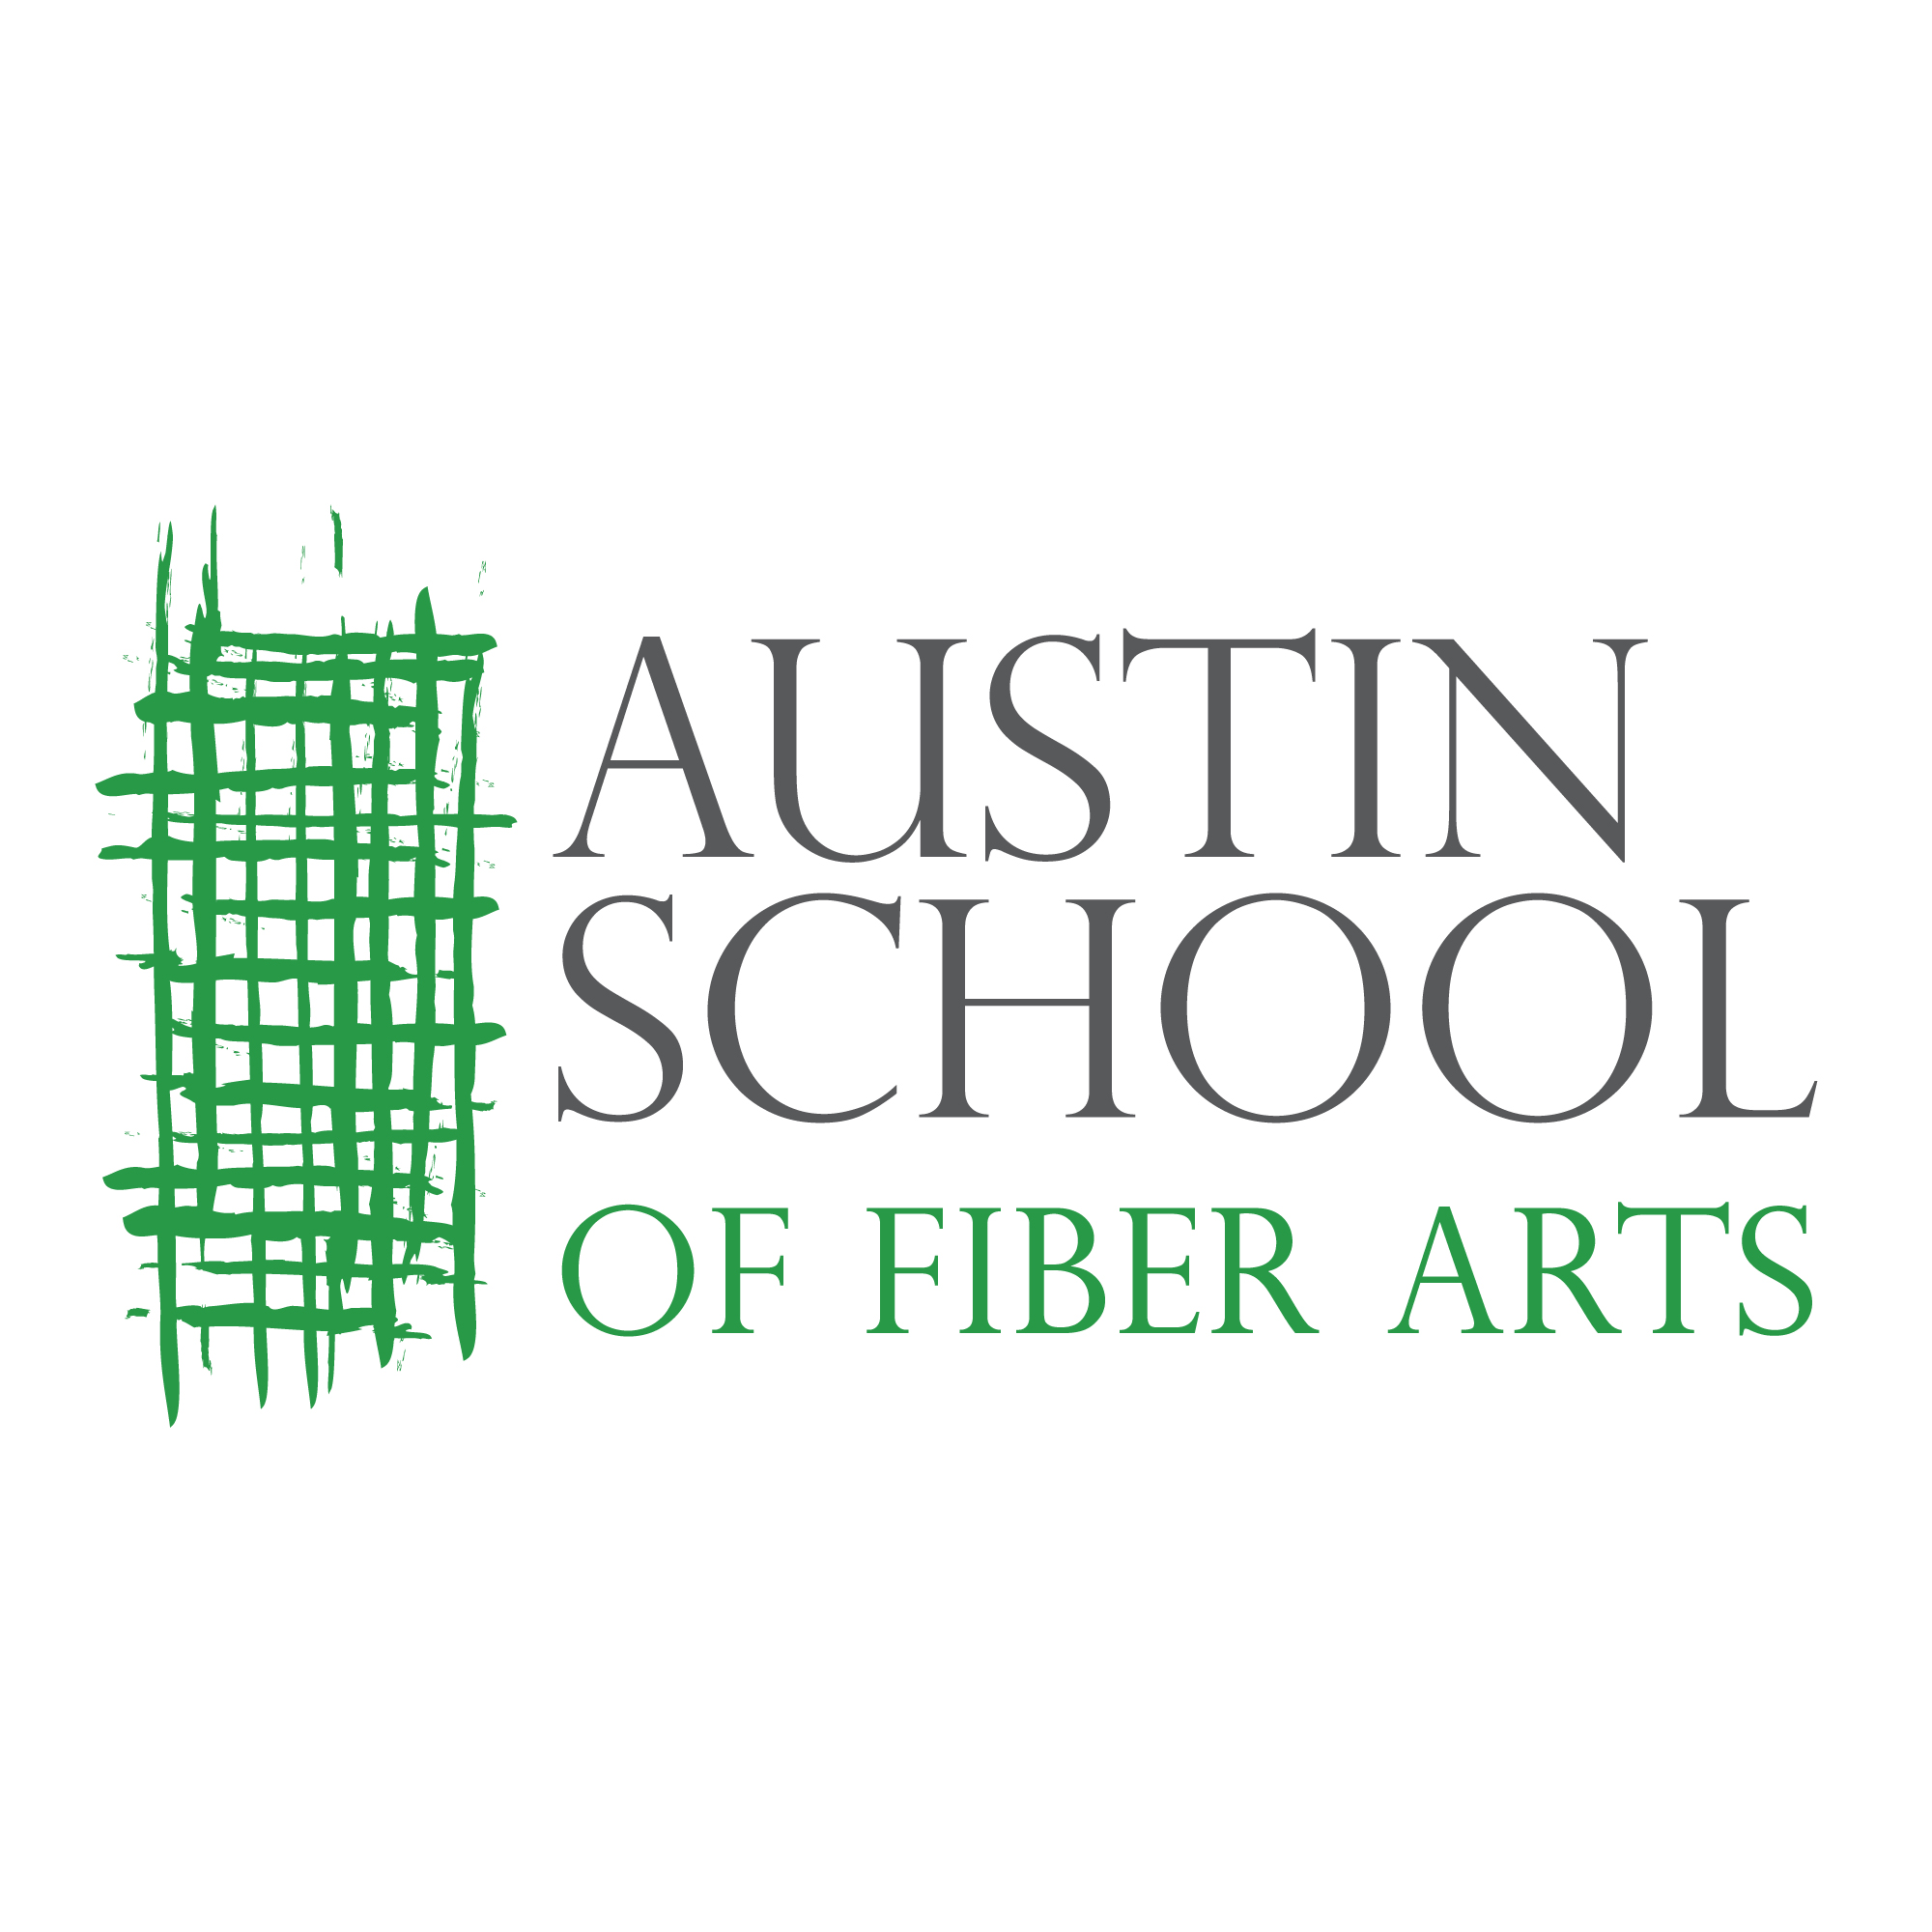 Austin School of Fiber Arts